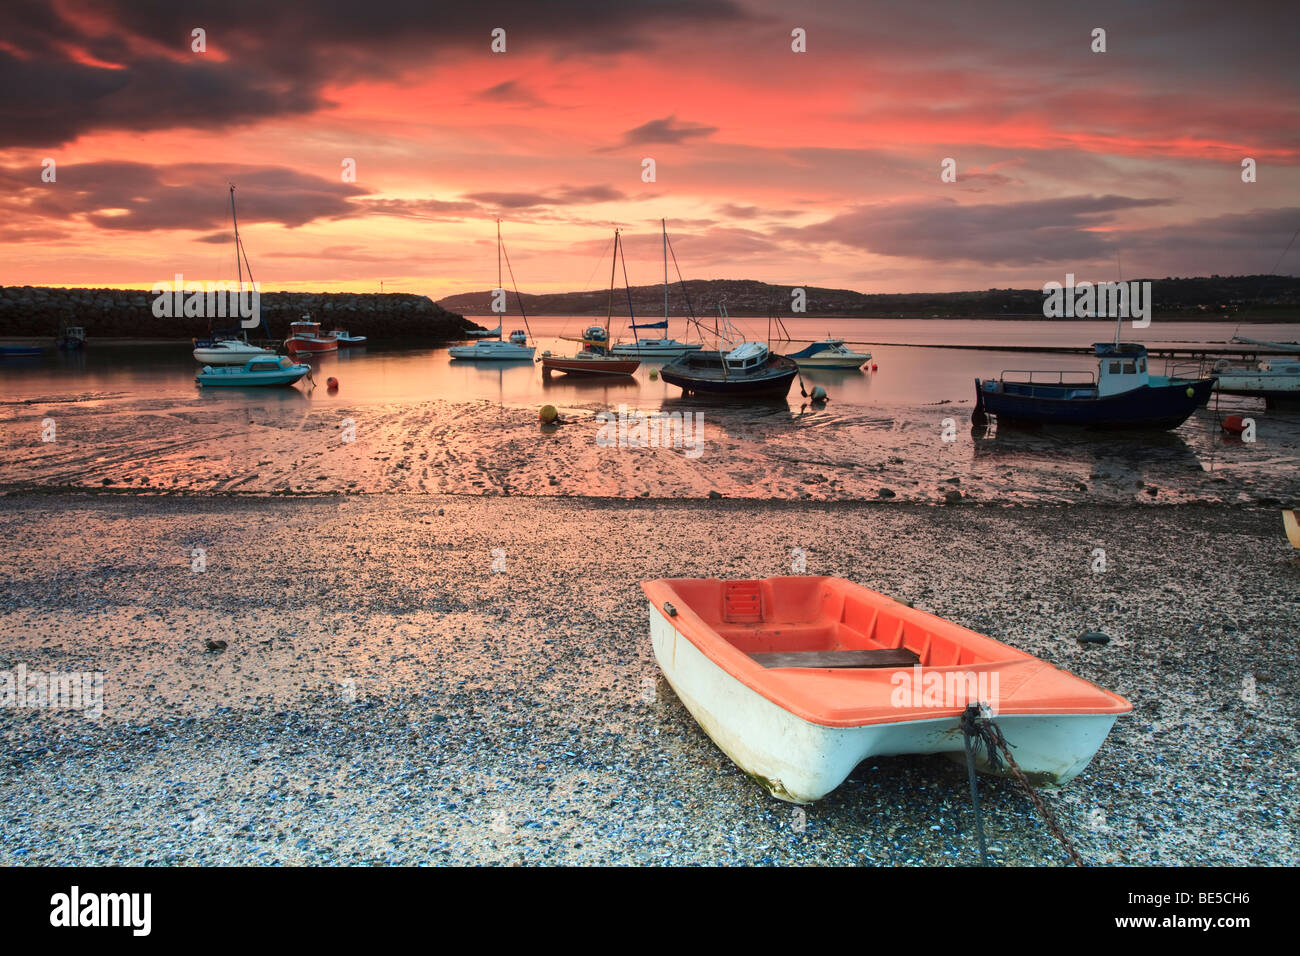 Early morning in Rhos harbour with the boats waiting for the tide in Rhos on Sea, Colwyn Bay, Wales, UK - Stock Image